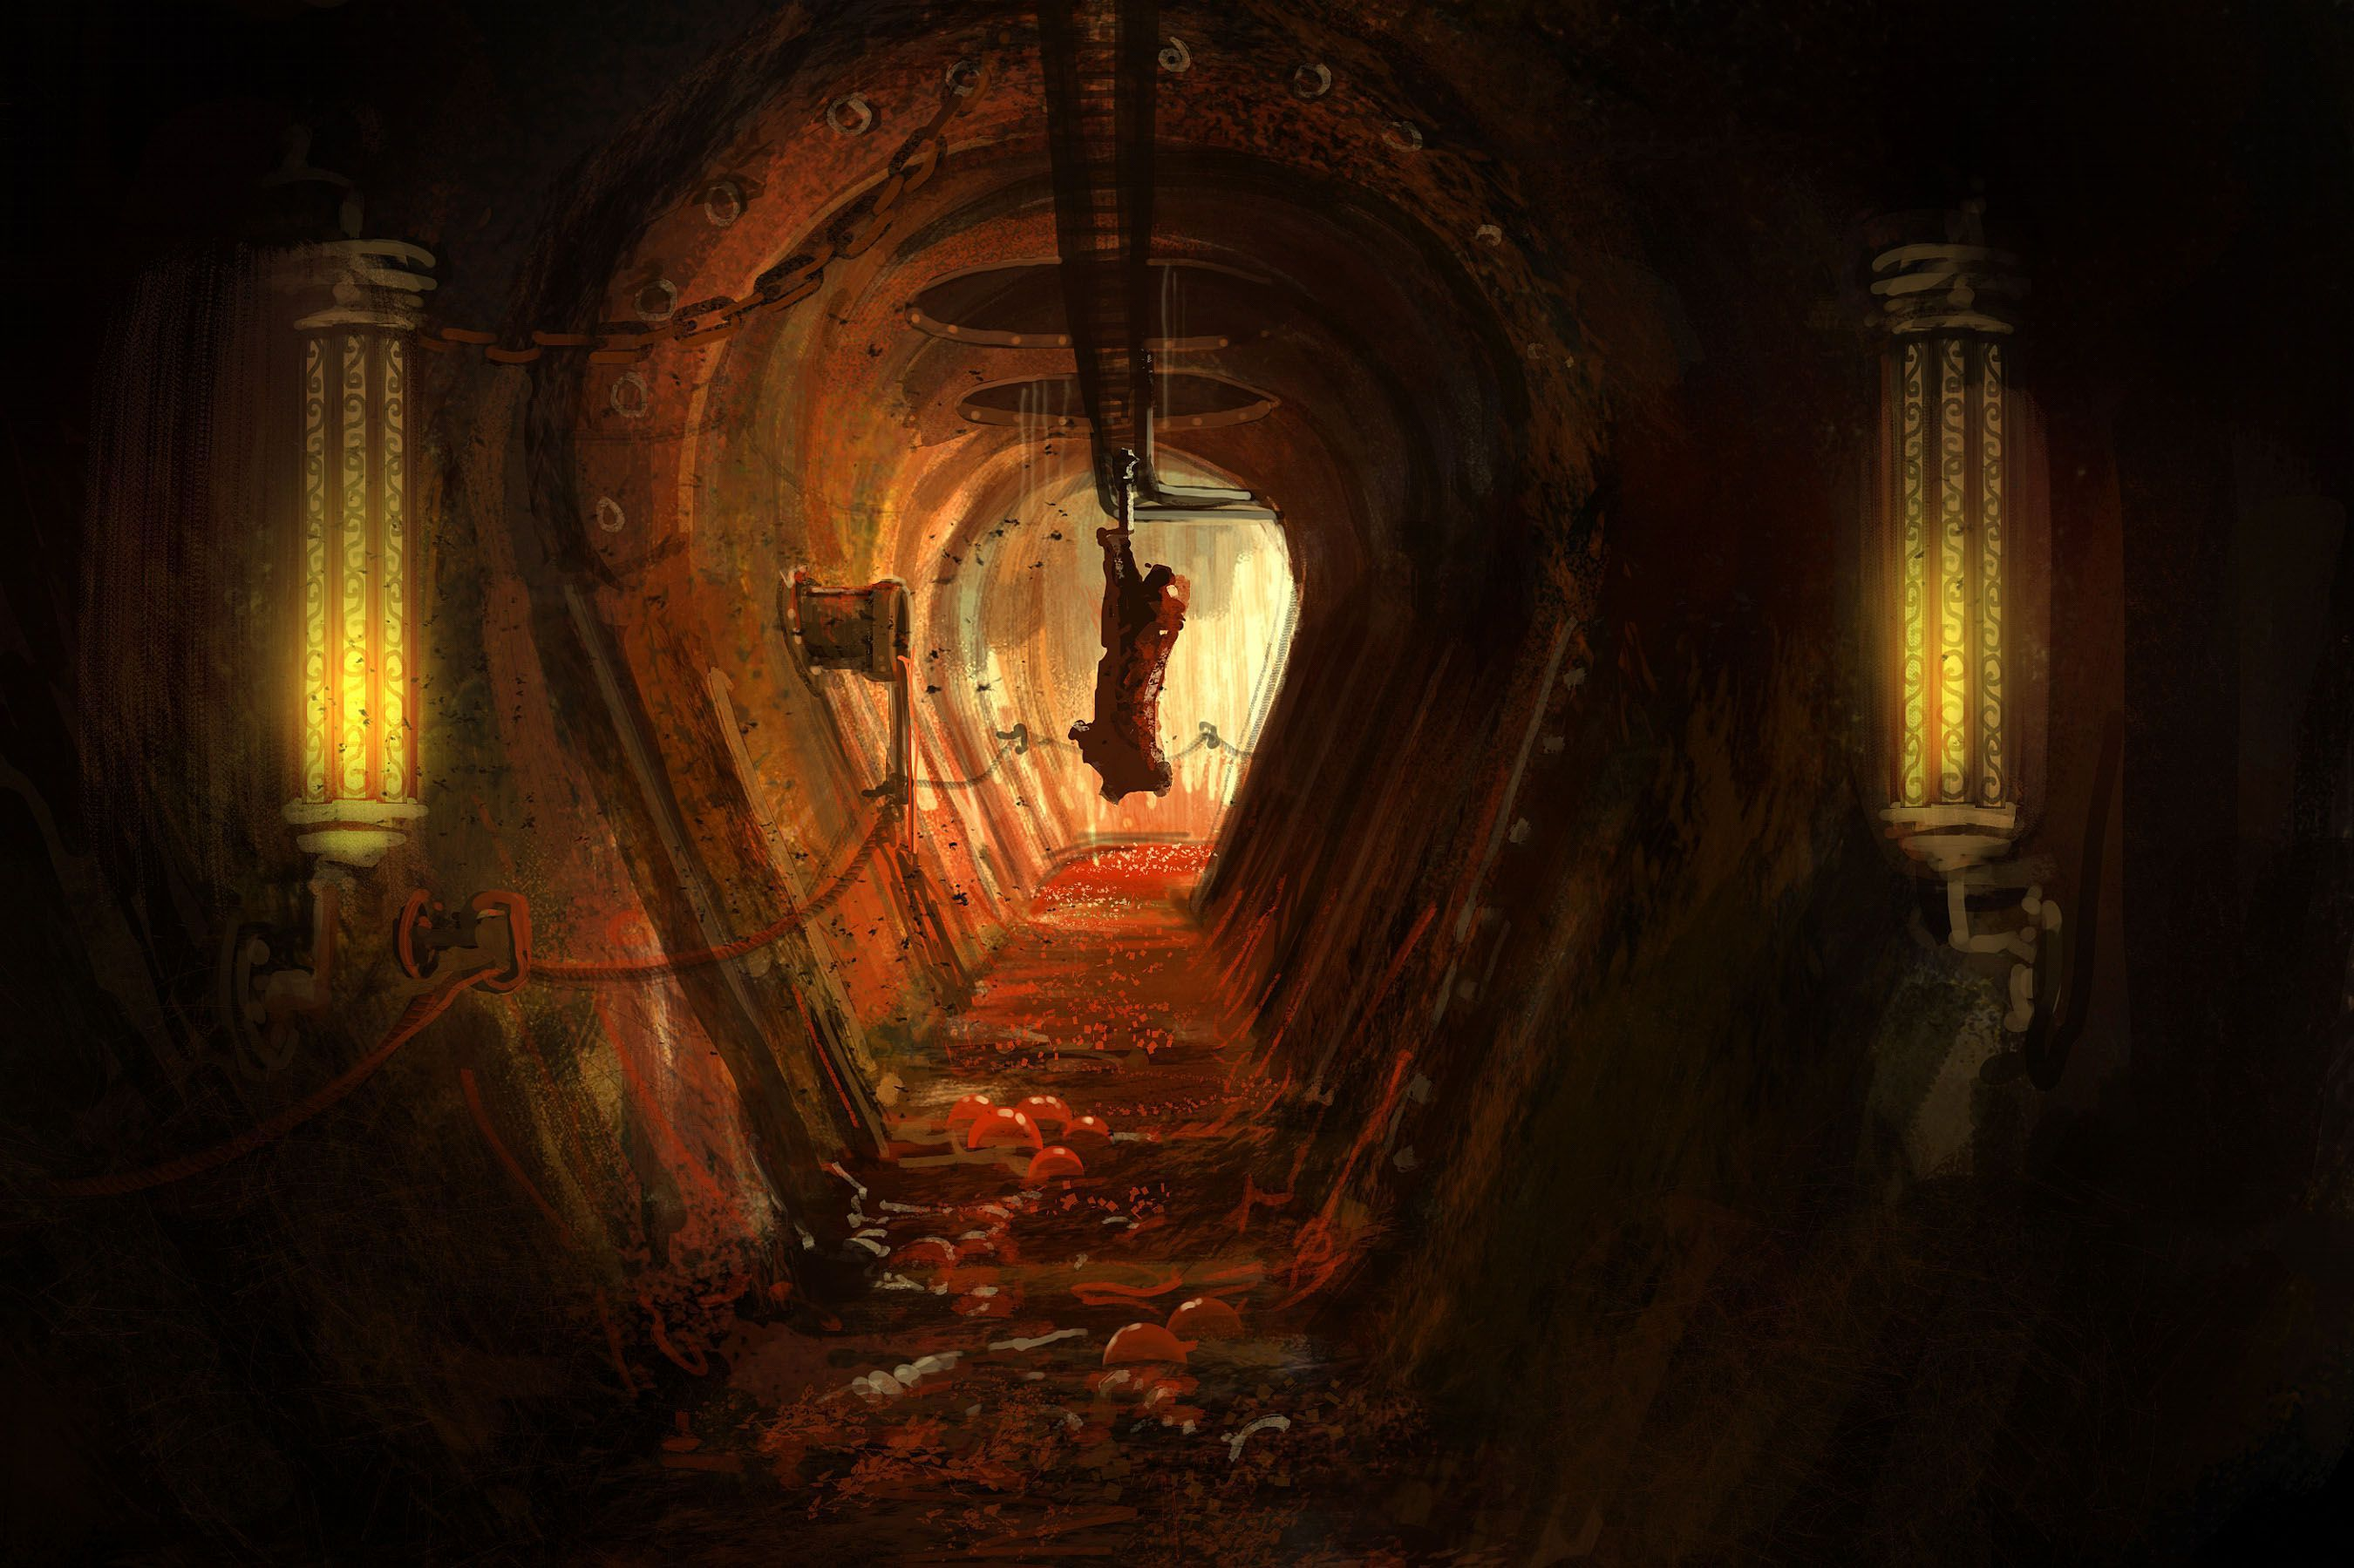 Amnesia The Dark Descent Wallpapers Backgrounds 2700x1799